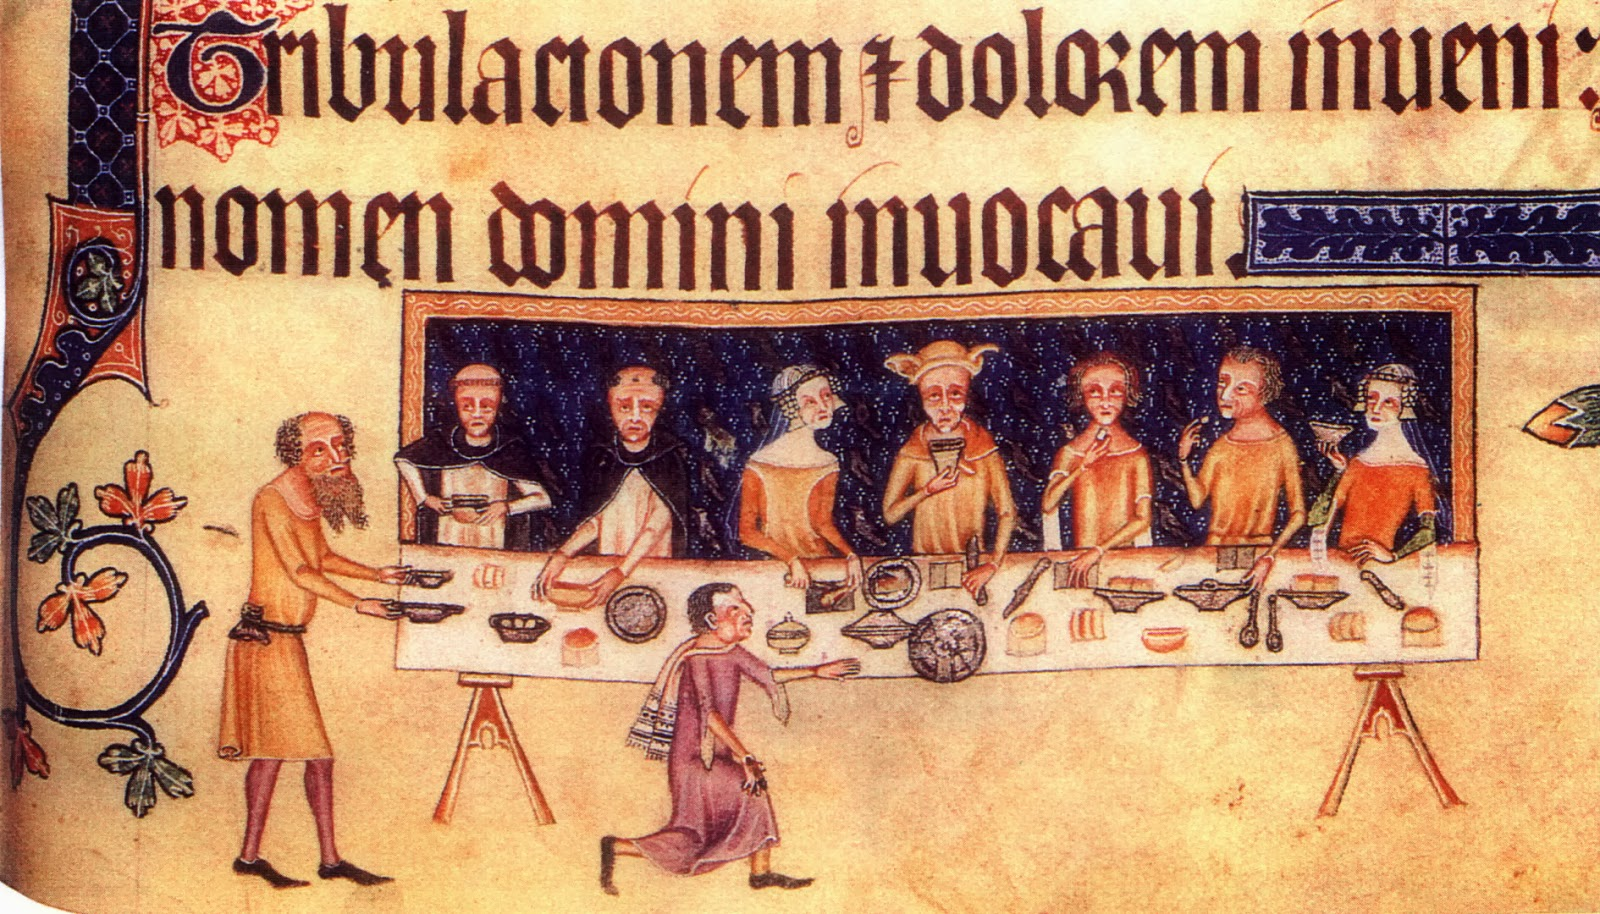 Etiquipedia The Earliest Books Written Of Etiquette And Table Manners